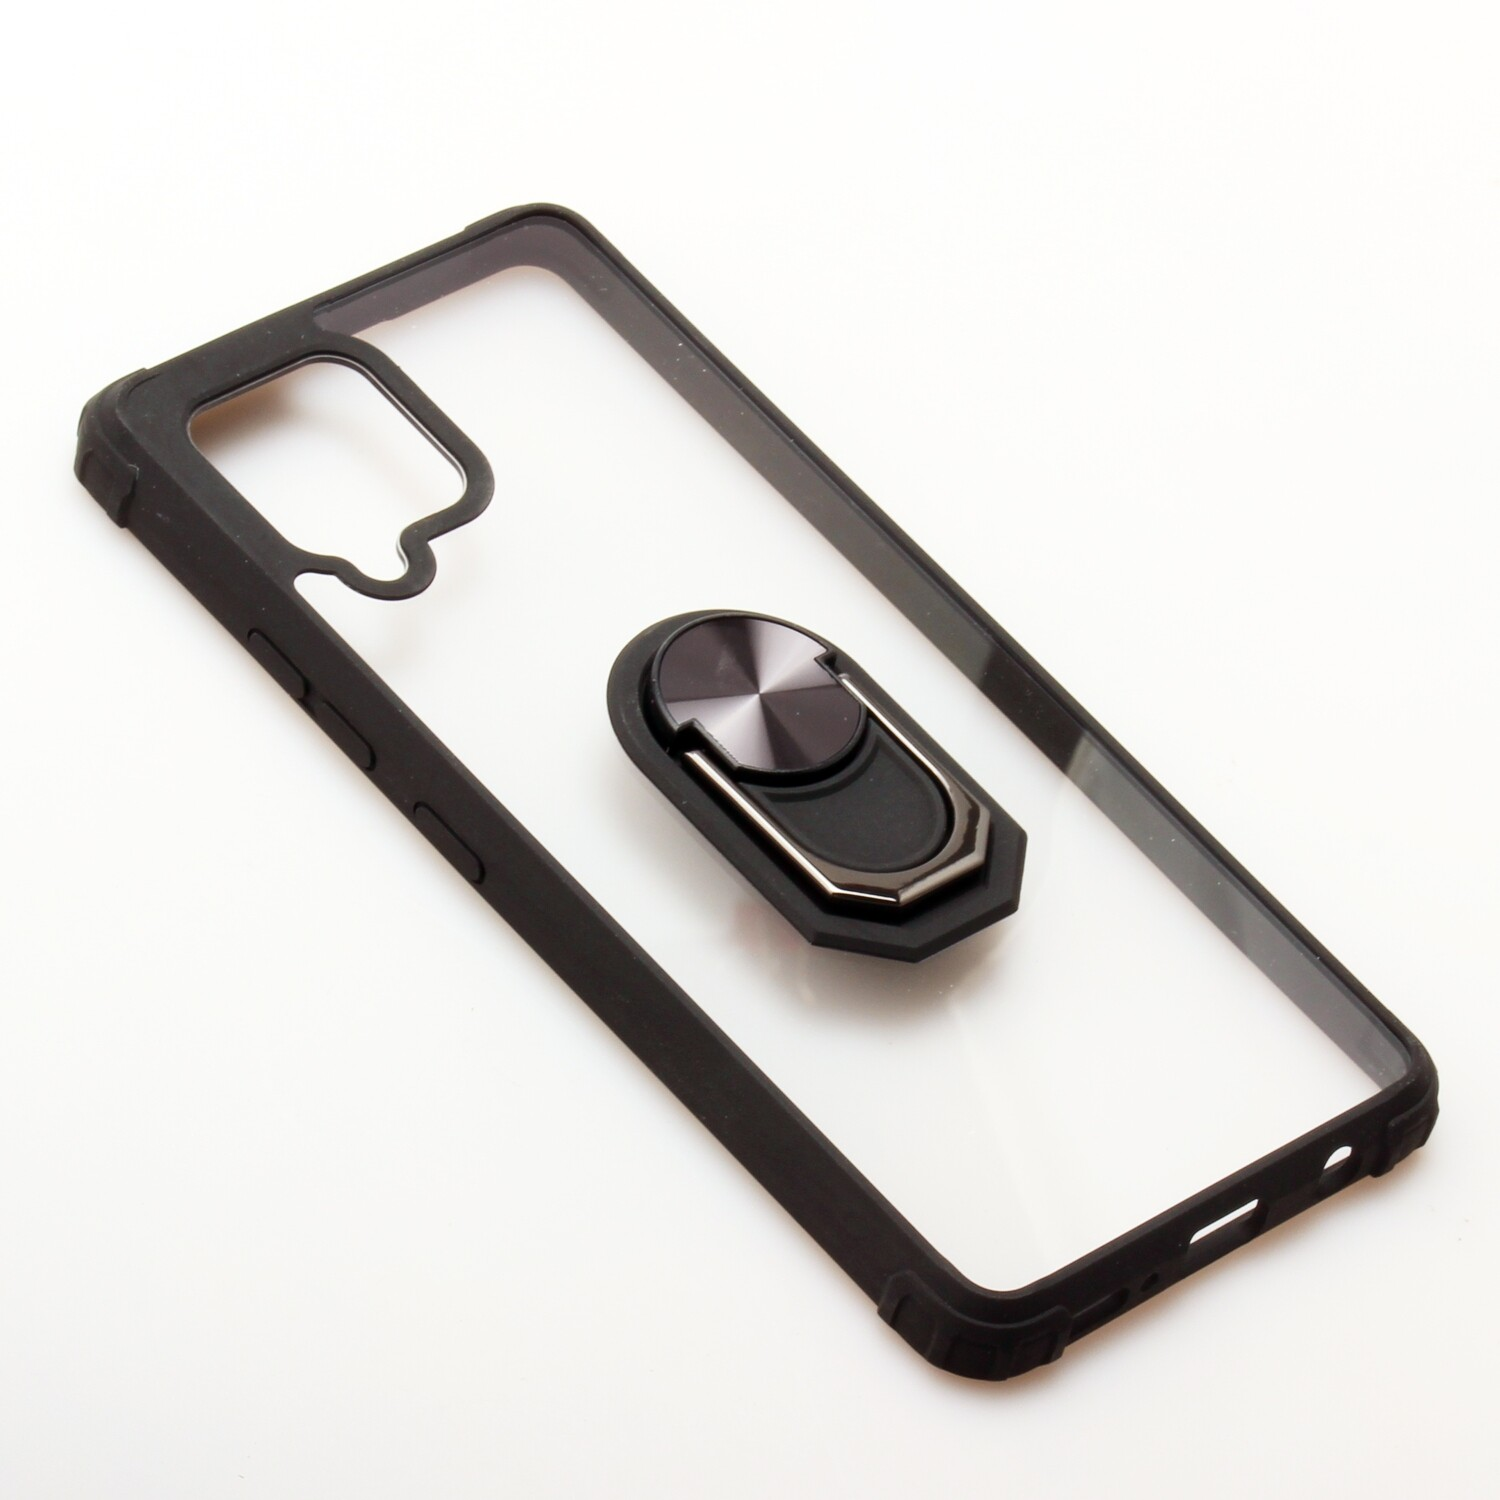 Google Pixel 4A Acrylic Case With Grip